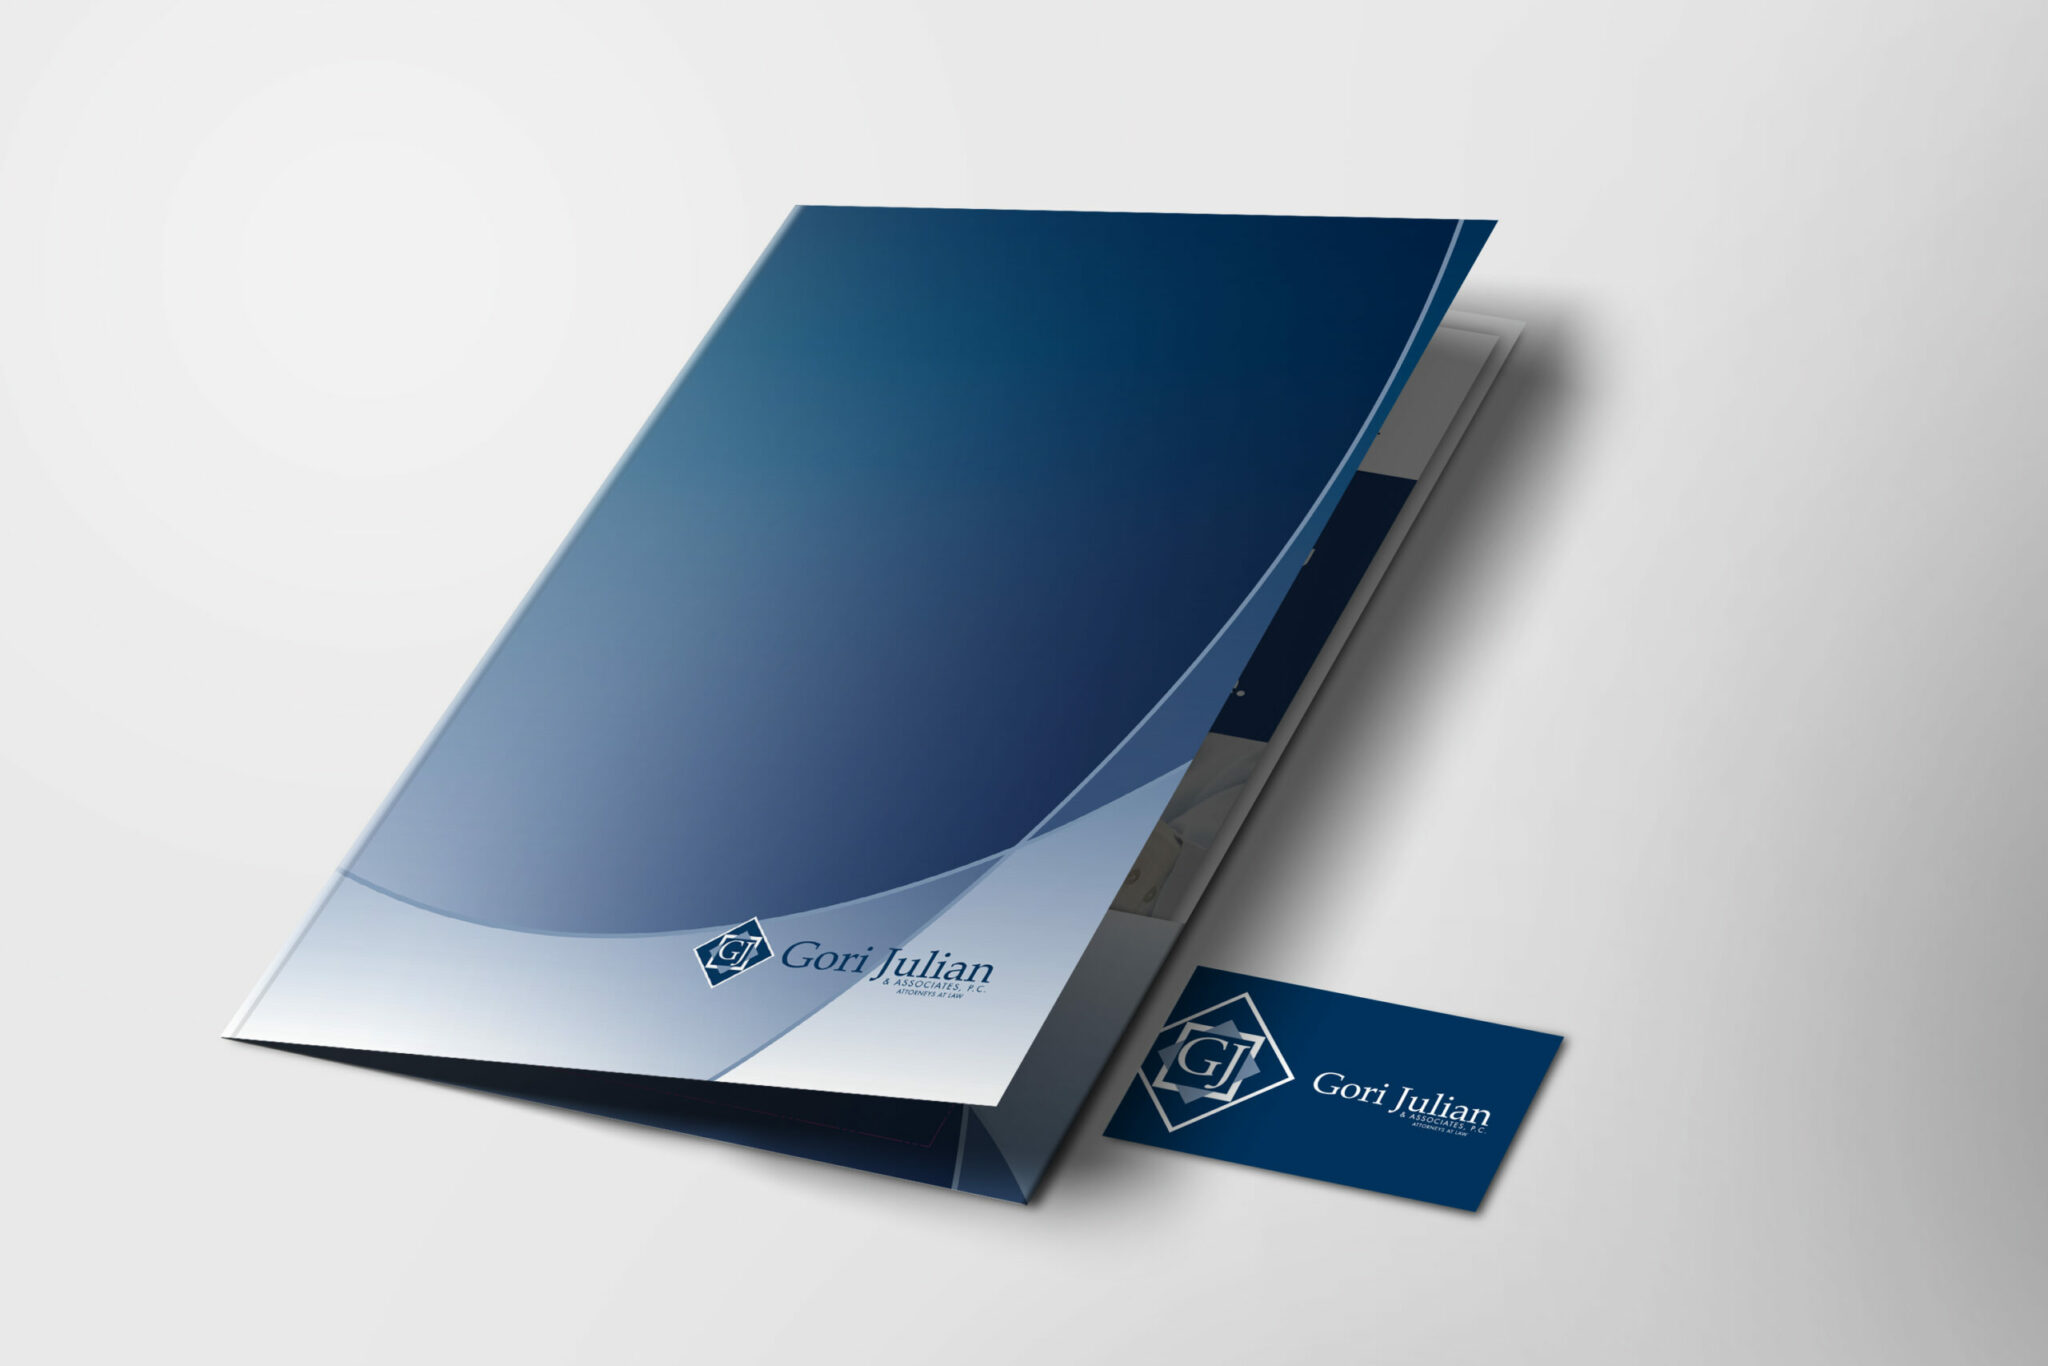 Gori Law folder and business card